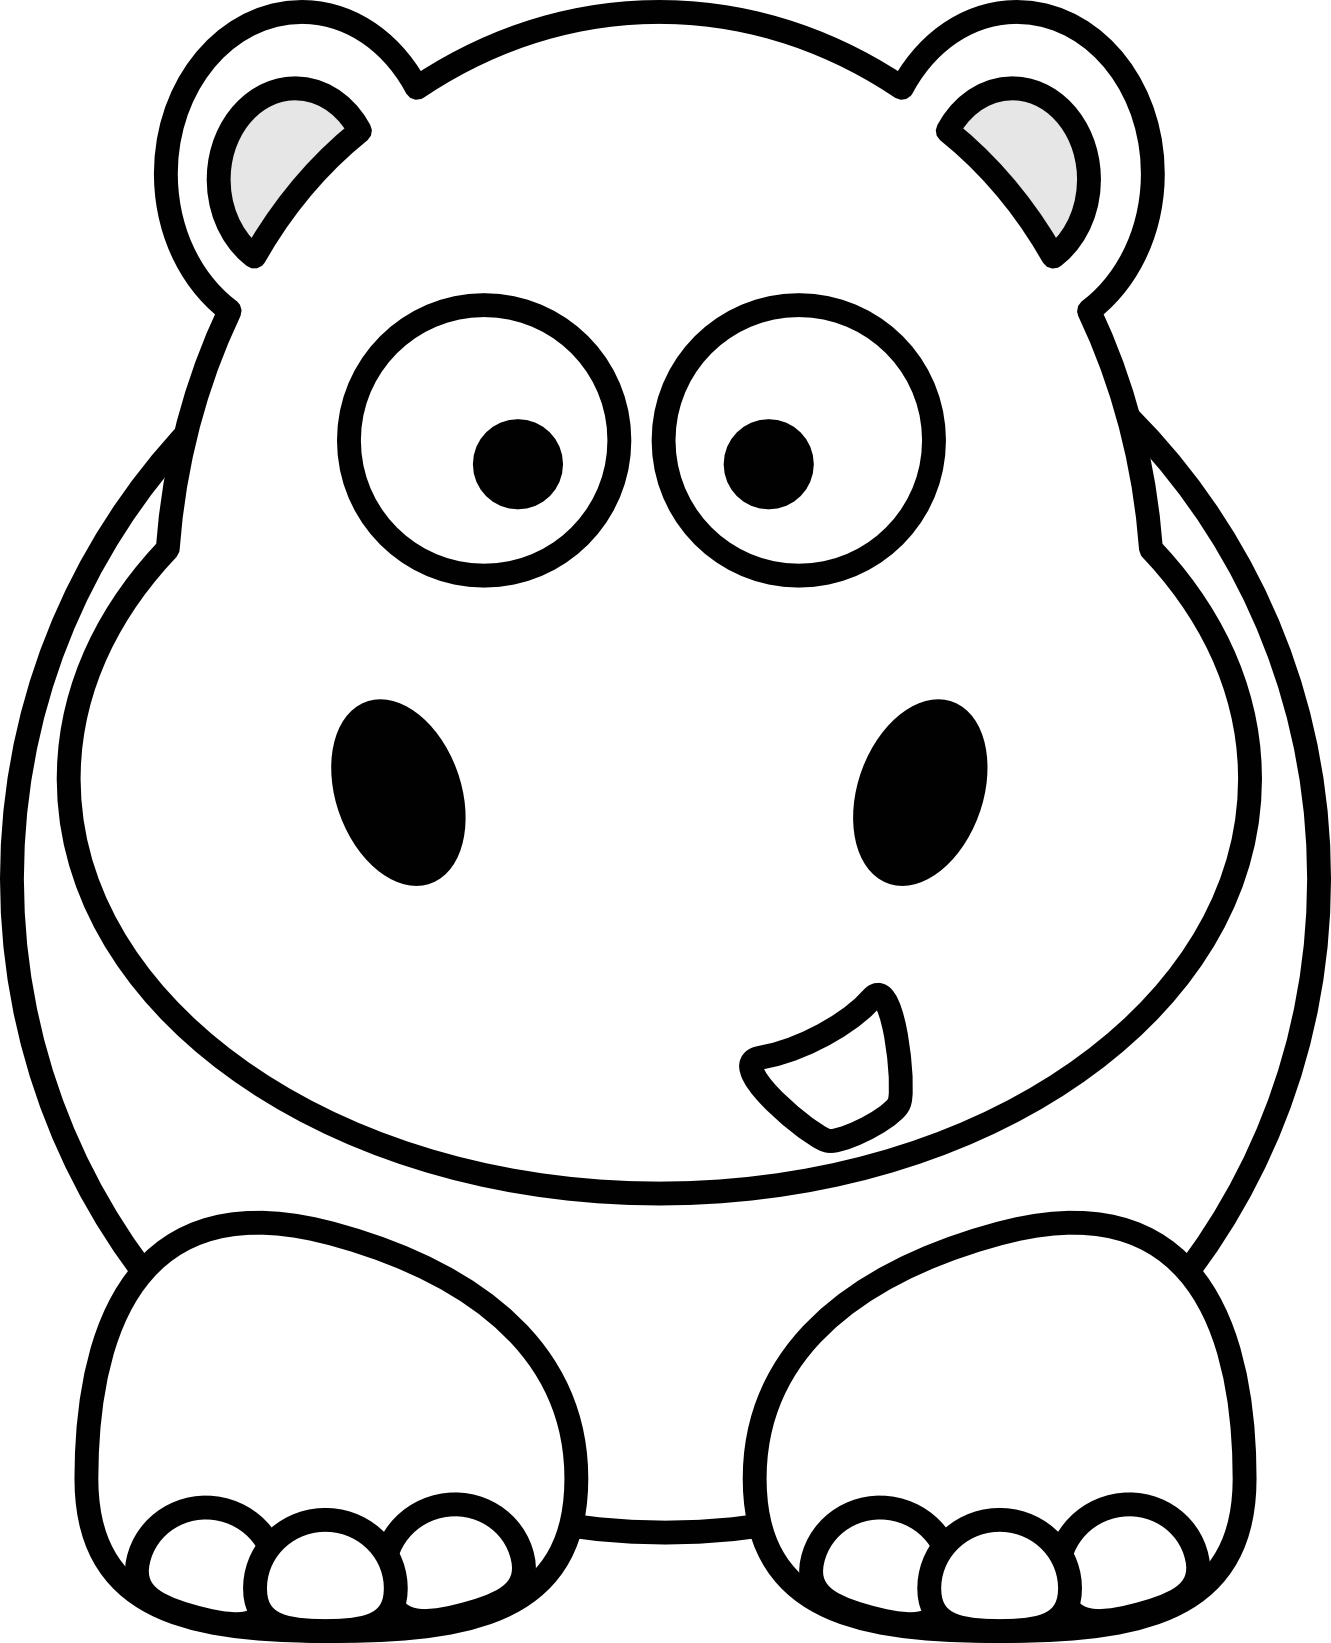 graphic library Panda free images cattleclipart. Black and white animal clipart